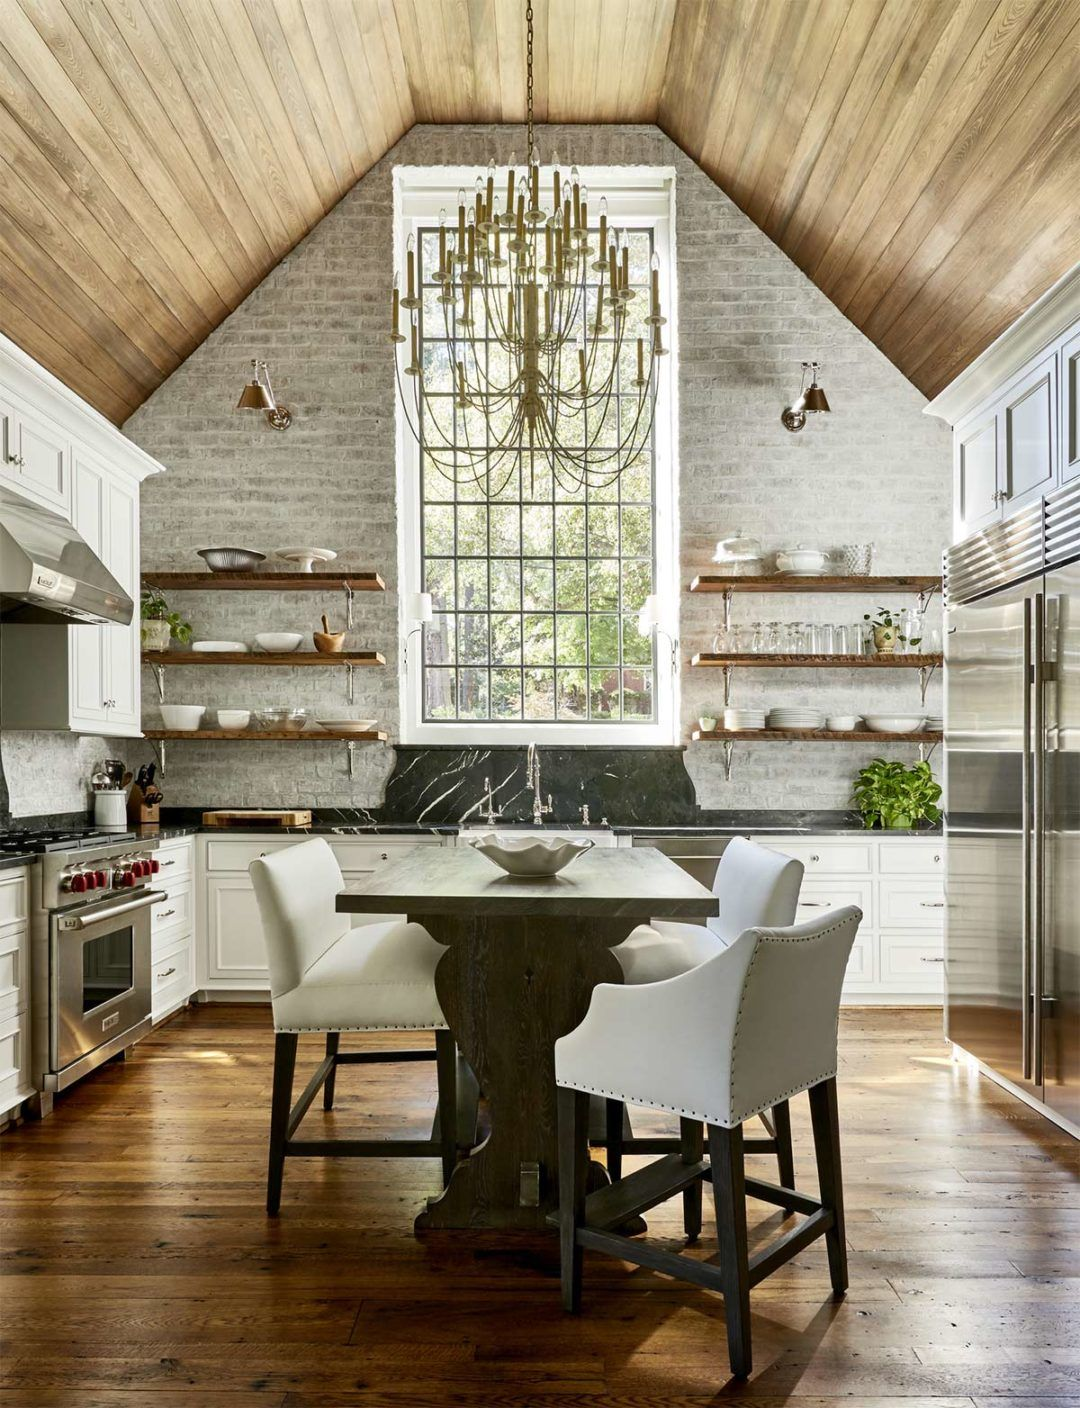 Plank And Pillow Diy And Decorating A Modern Farmhouse Vaulted Ceiling Kitchen Vaulted Ceiling Bedroom Vaulted Ceiling Decor #vaulted #ceiling #living #room #and #kitchen